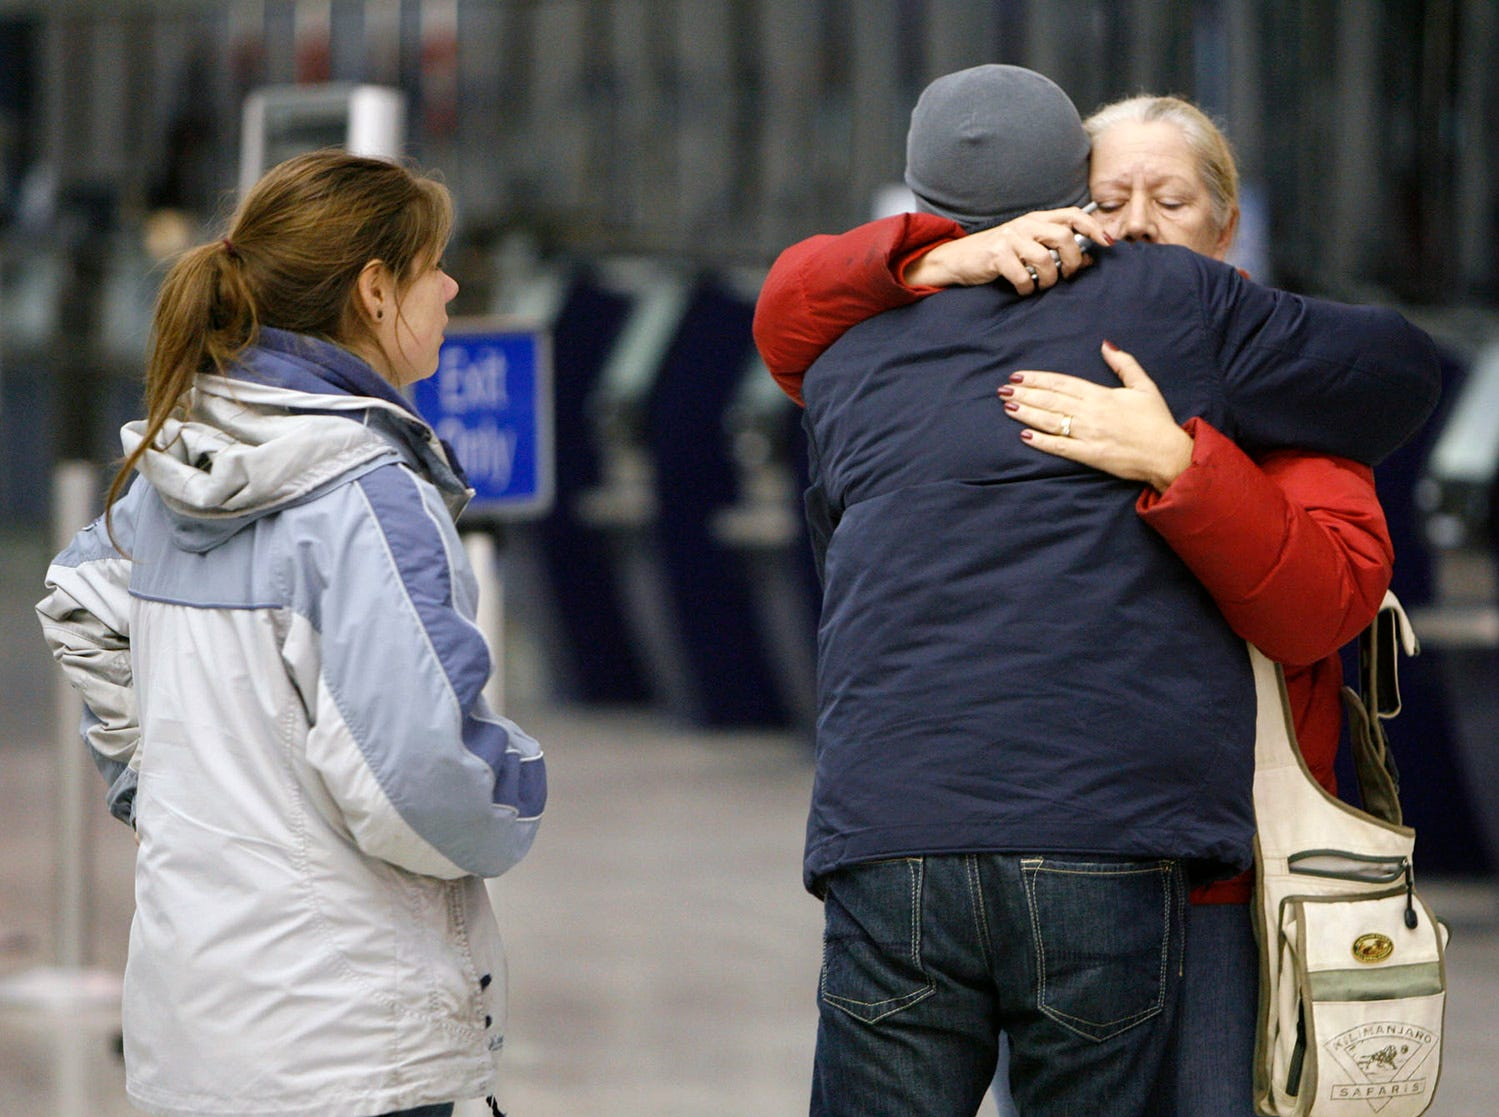 """""""Family members leaver the Buffalo Niagara Airport on Thursday, Feb. 12, 2009 after Continental Airlines Flight 3407 crashed into a home in Clarence Center, N.Y. The commuter plane """"""""basically dove"""""""" into a house while coming in for a landing, sparking a fiery explosion that killed all 48 people on board and one person on the ground, an emergency official said Friday. (AP Photo/The Buffalo News,Harry Scull Jr)"""""""